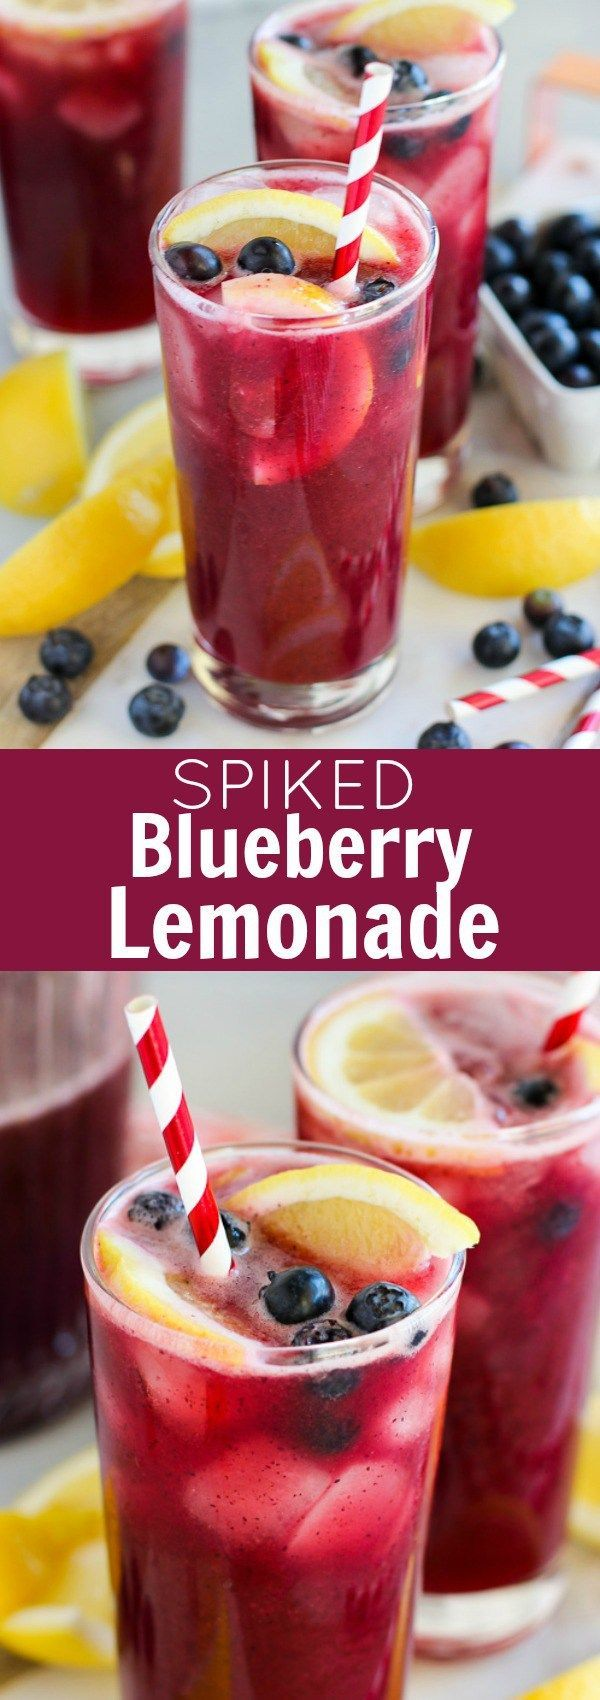 Spiked Blueberry Lemonade - Easy Homemade Blueberry Lemonade spiked with Vodka! Sweet and tart, cold and refreshing - the perfect cocktail for summer! (Msg 4 21+) ad #SVEDKASummer